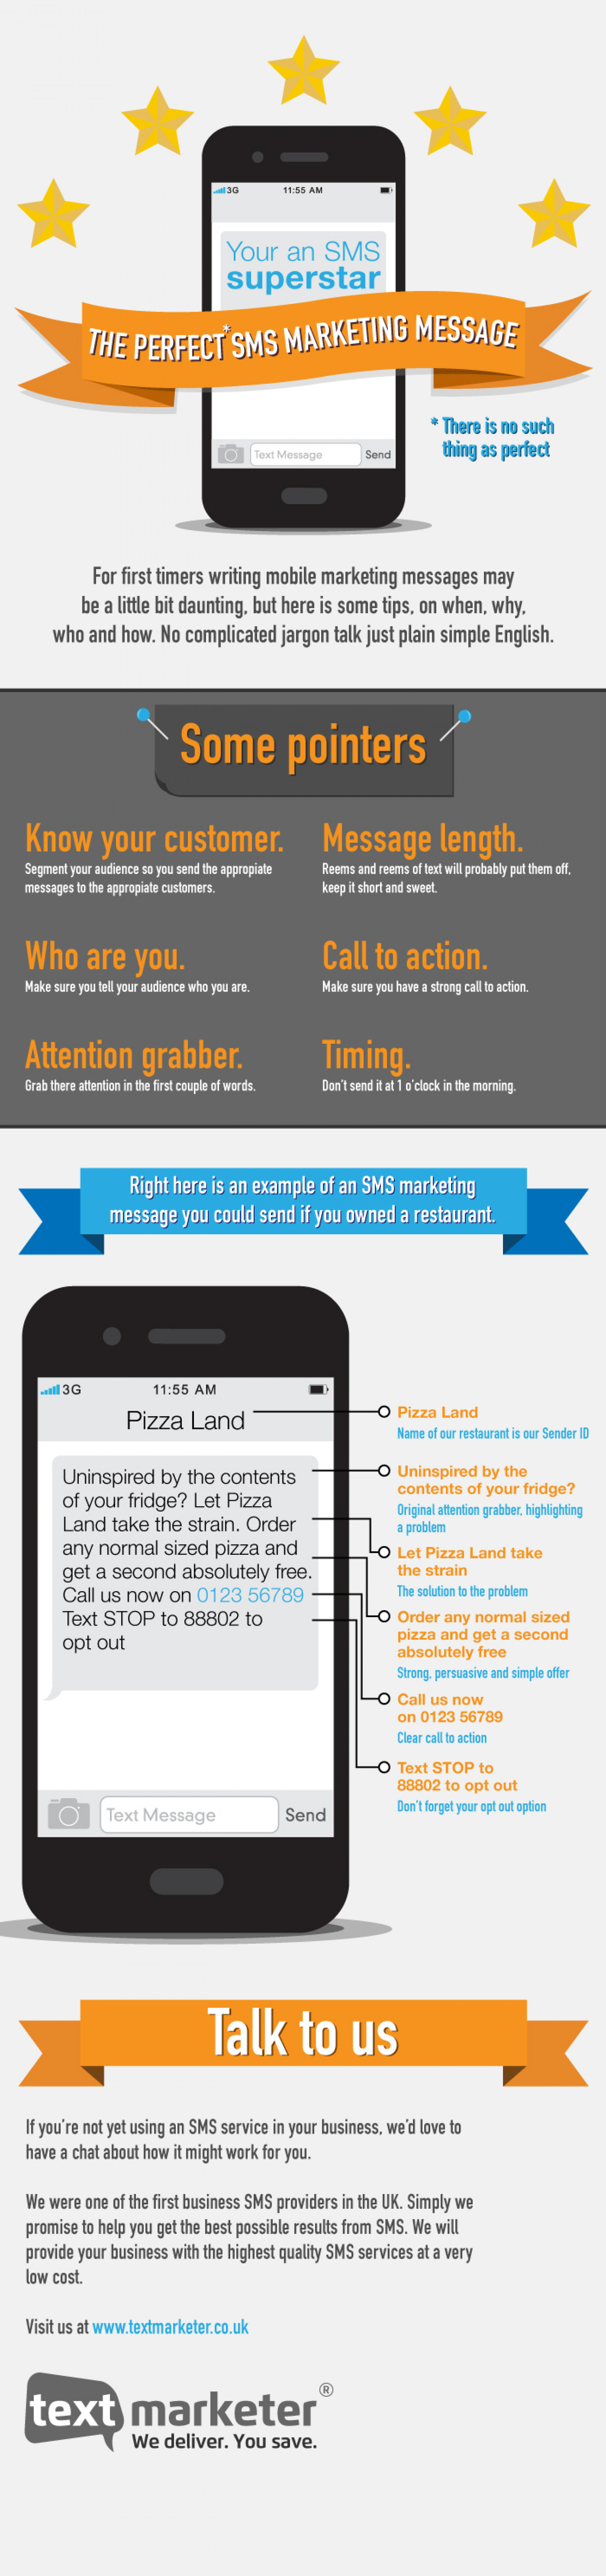 The perfect SMS marketing campaign  Infographic